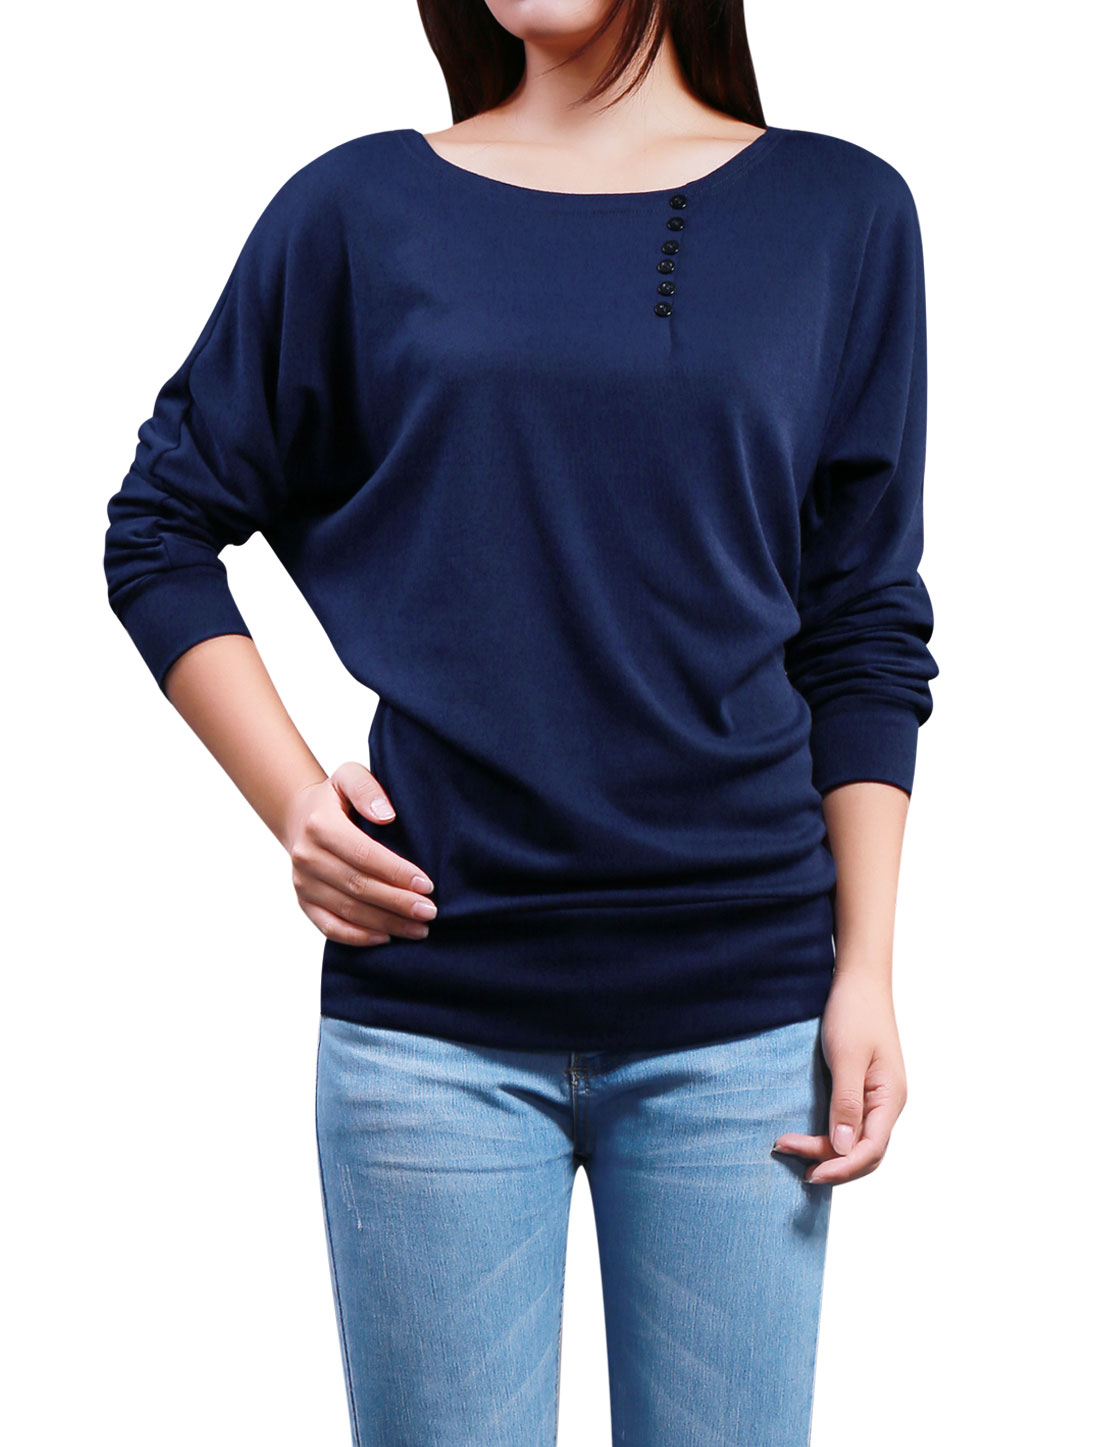 Lady Batwing Sleeves Boat Neck Button Decor Front Top Dark Blue XS